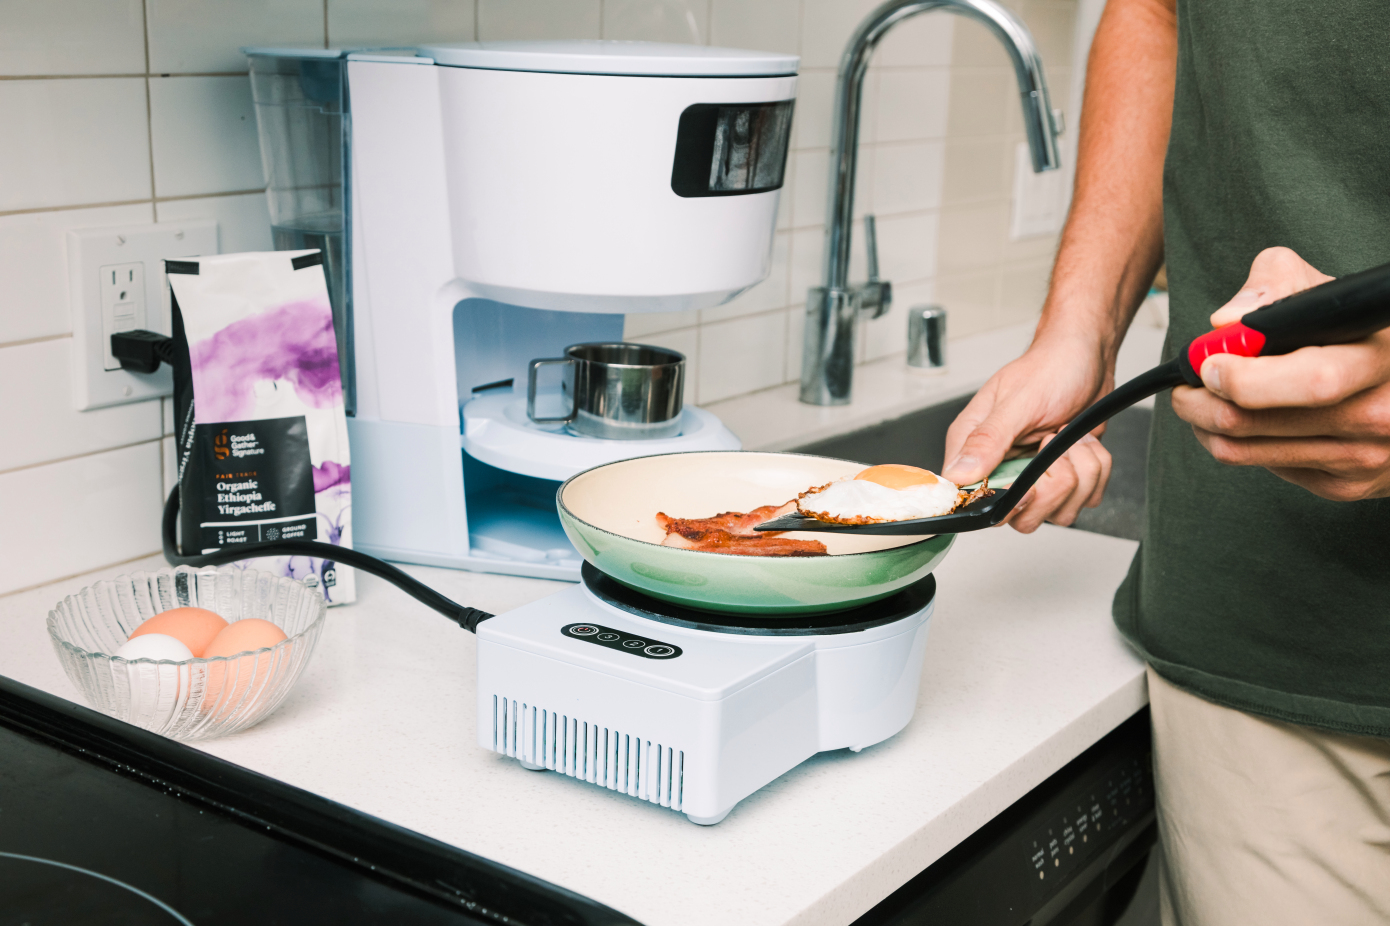 Takumi Smart Cooking Appliance by Yo-Kai Express is Ideal for Busy People